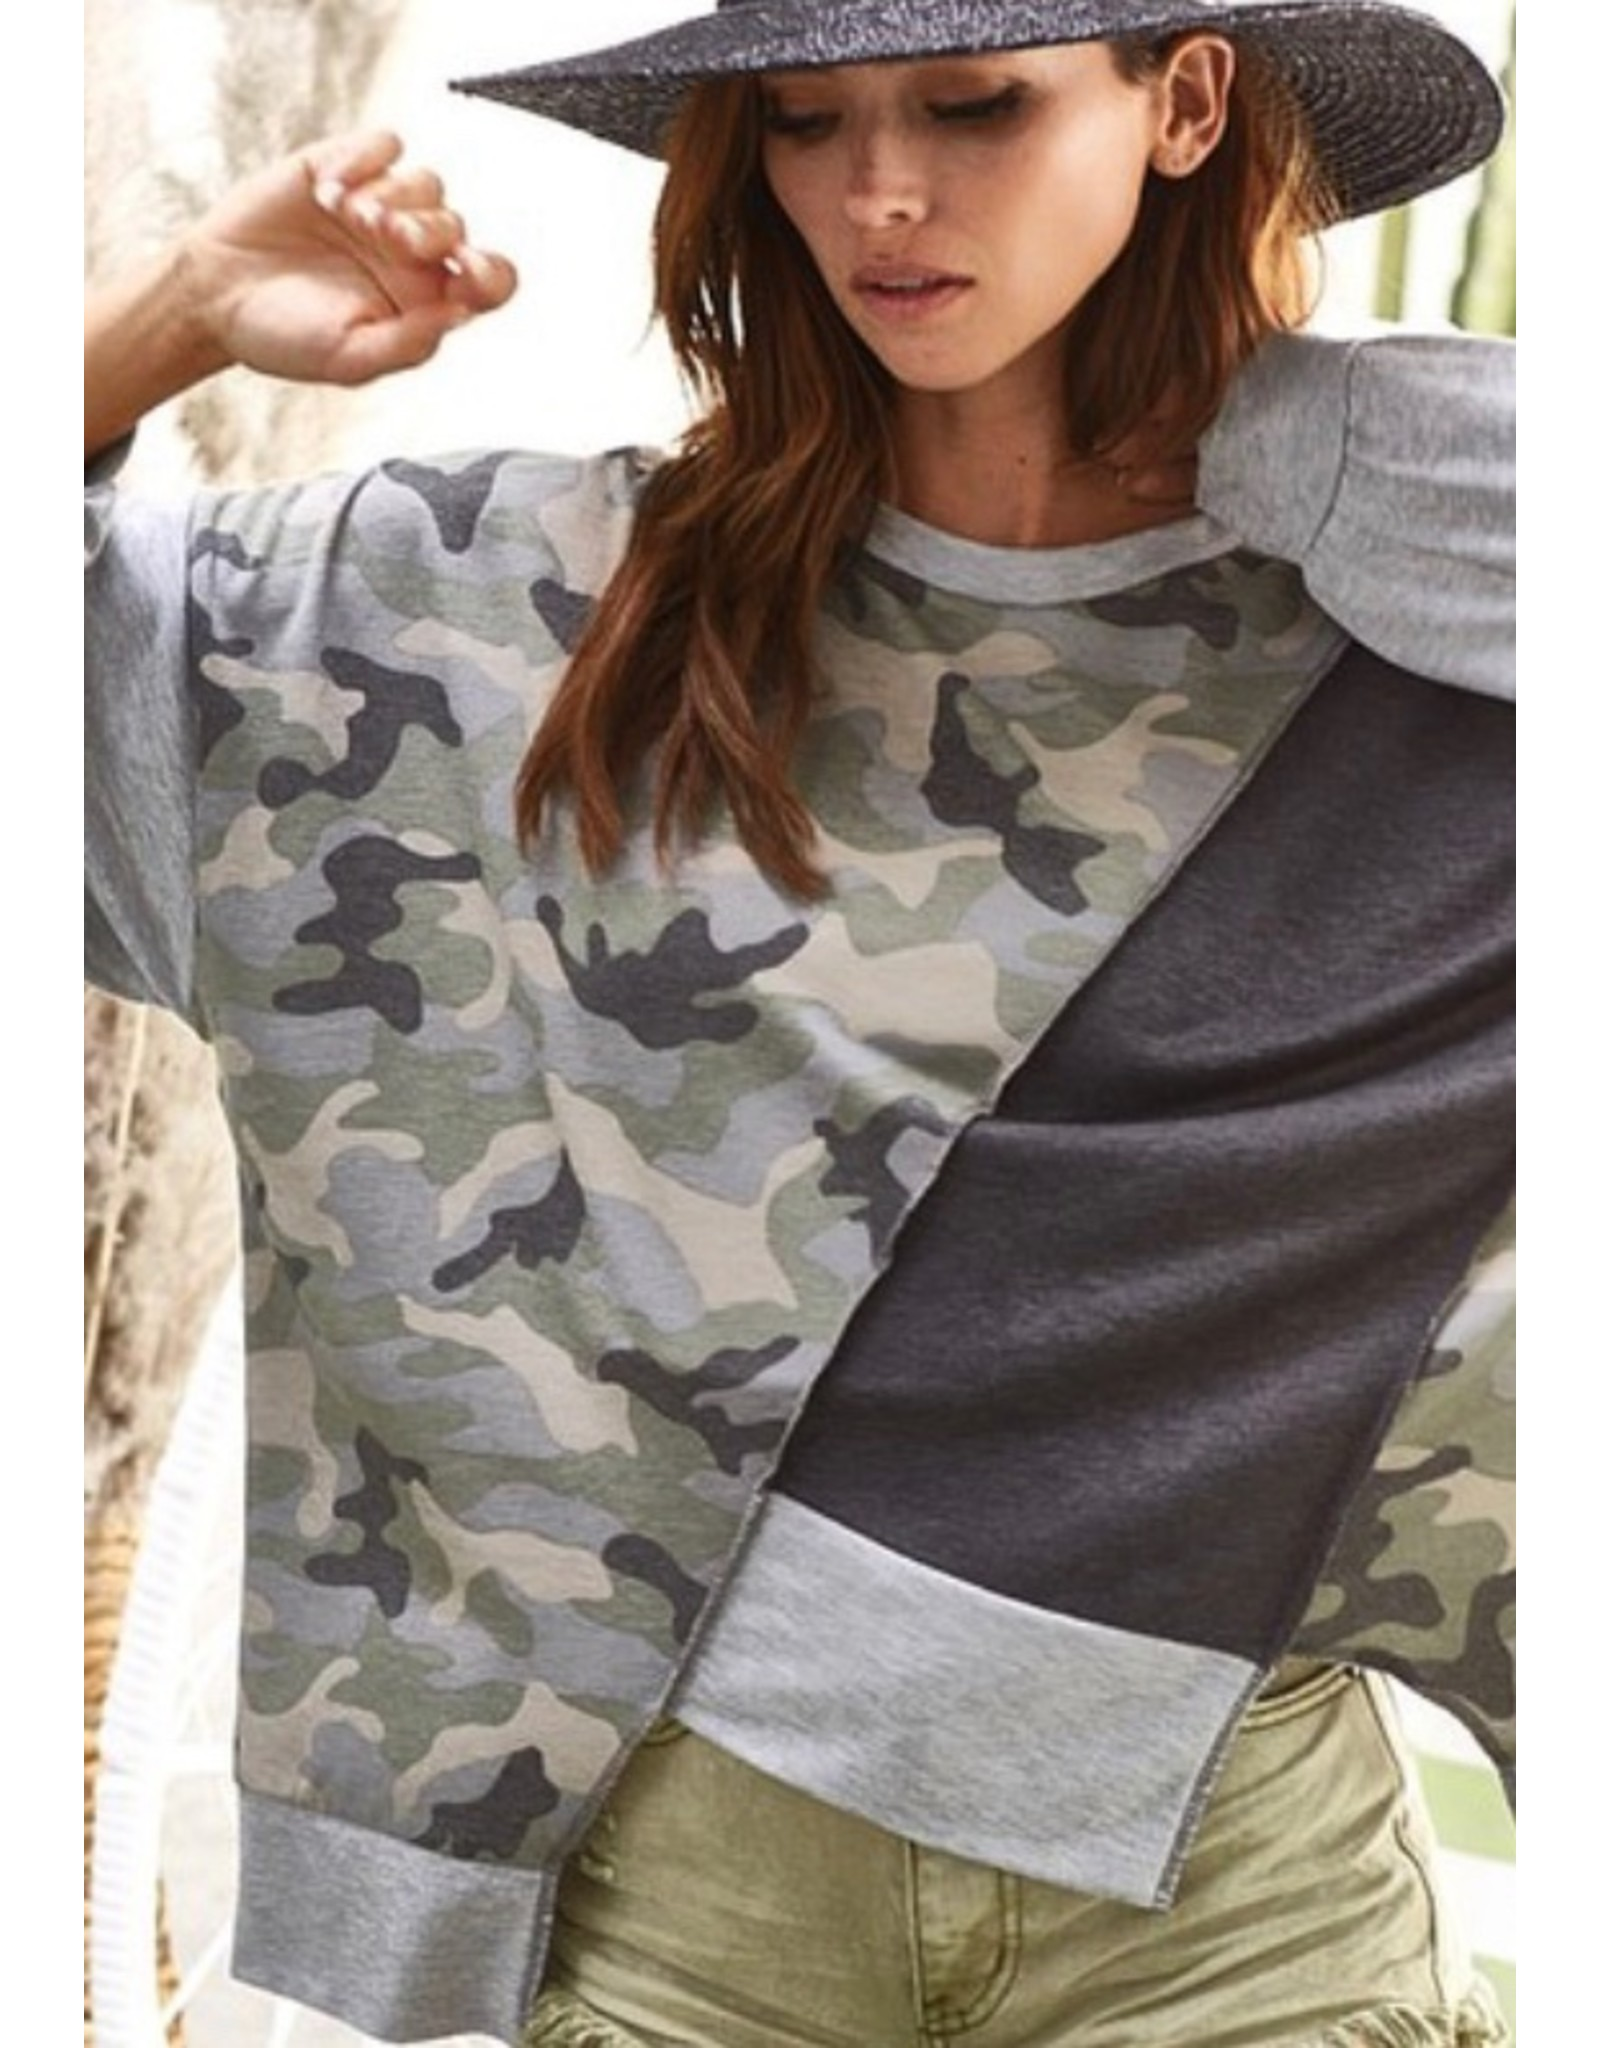 LATA Uneven Lines Color Block French Terry w/ Camo